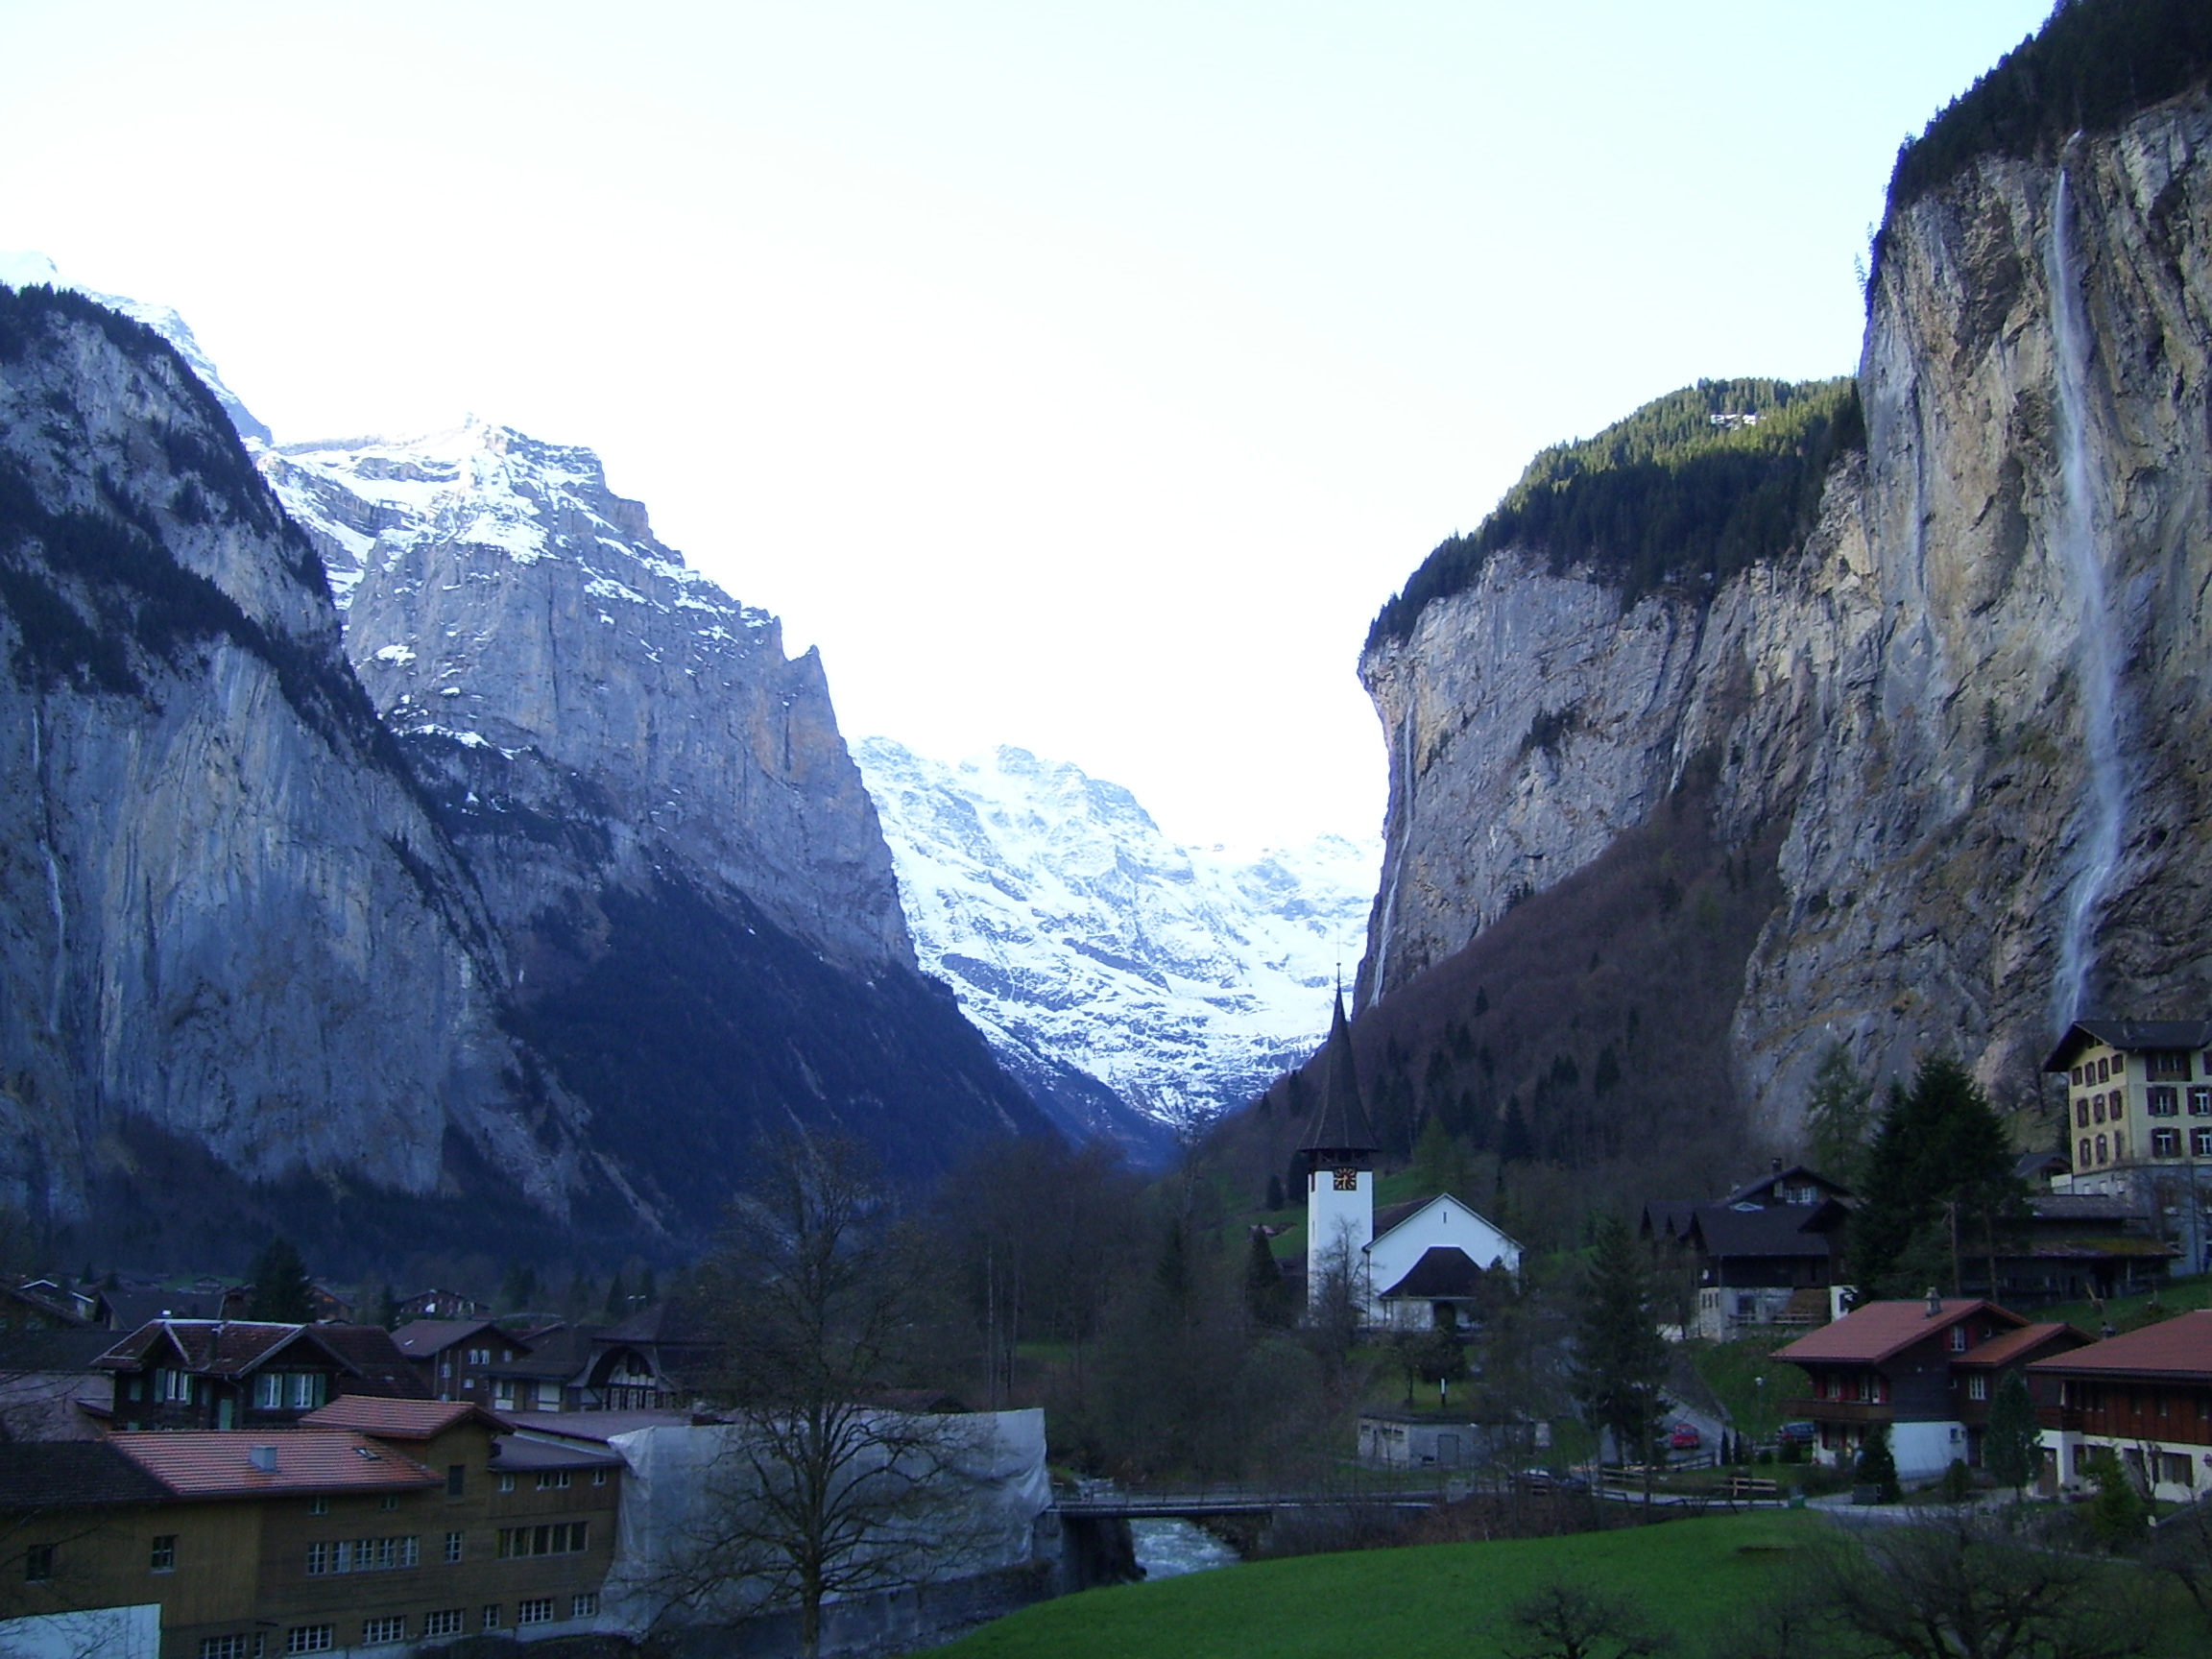 File:Jungfrau, Amazing waterfall Swiss Alps.jpg - Wikimedia Commons